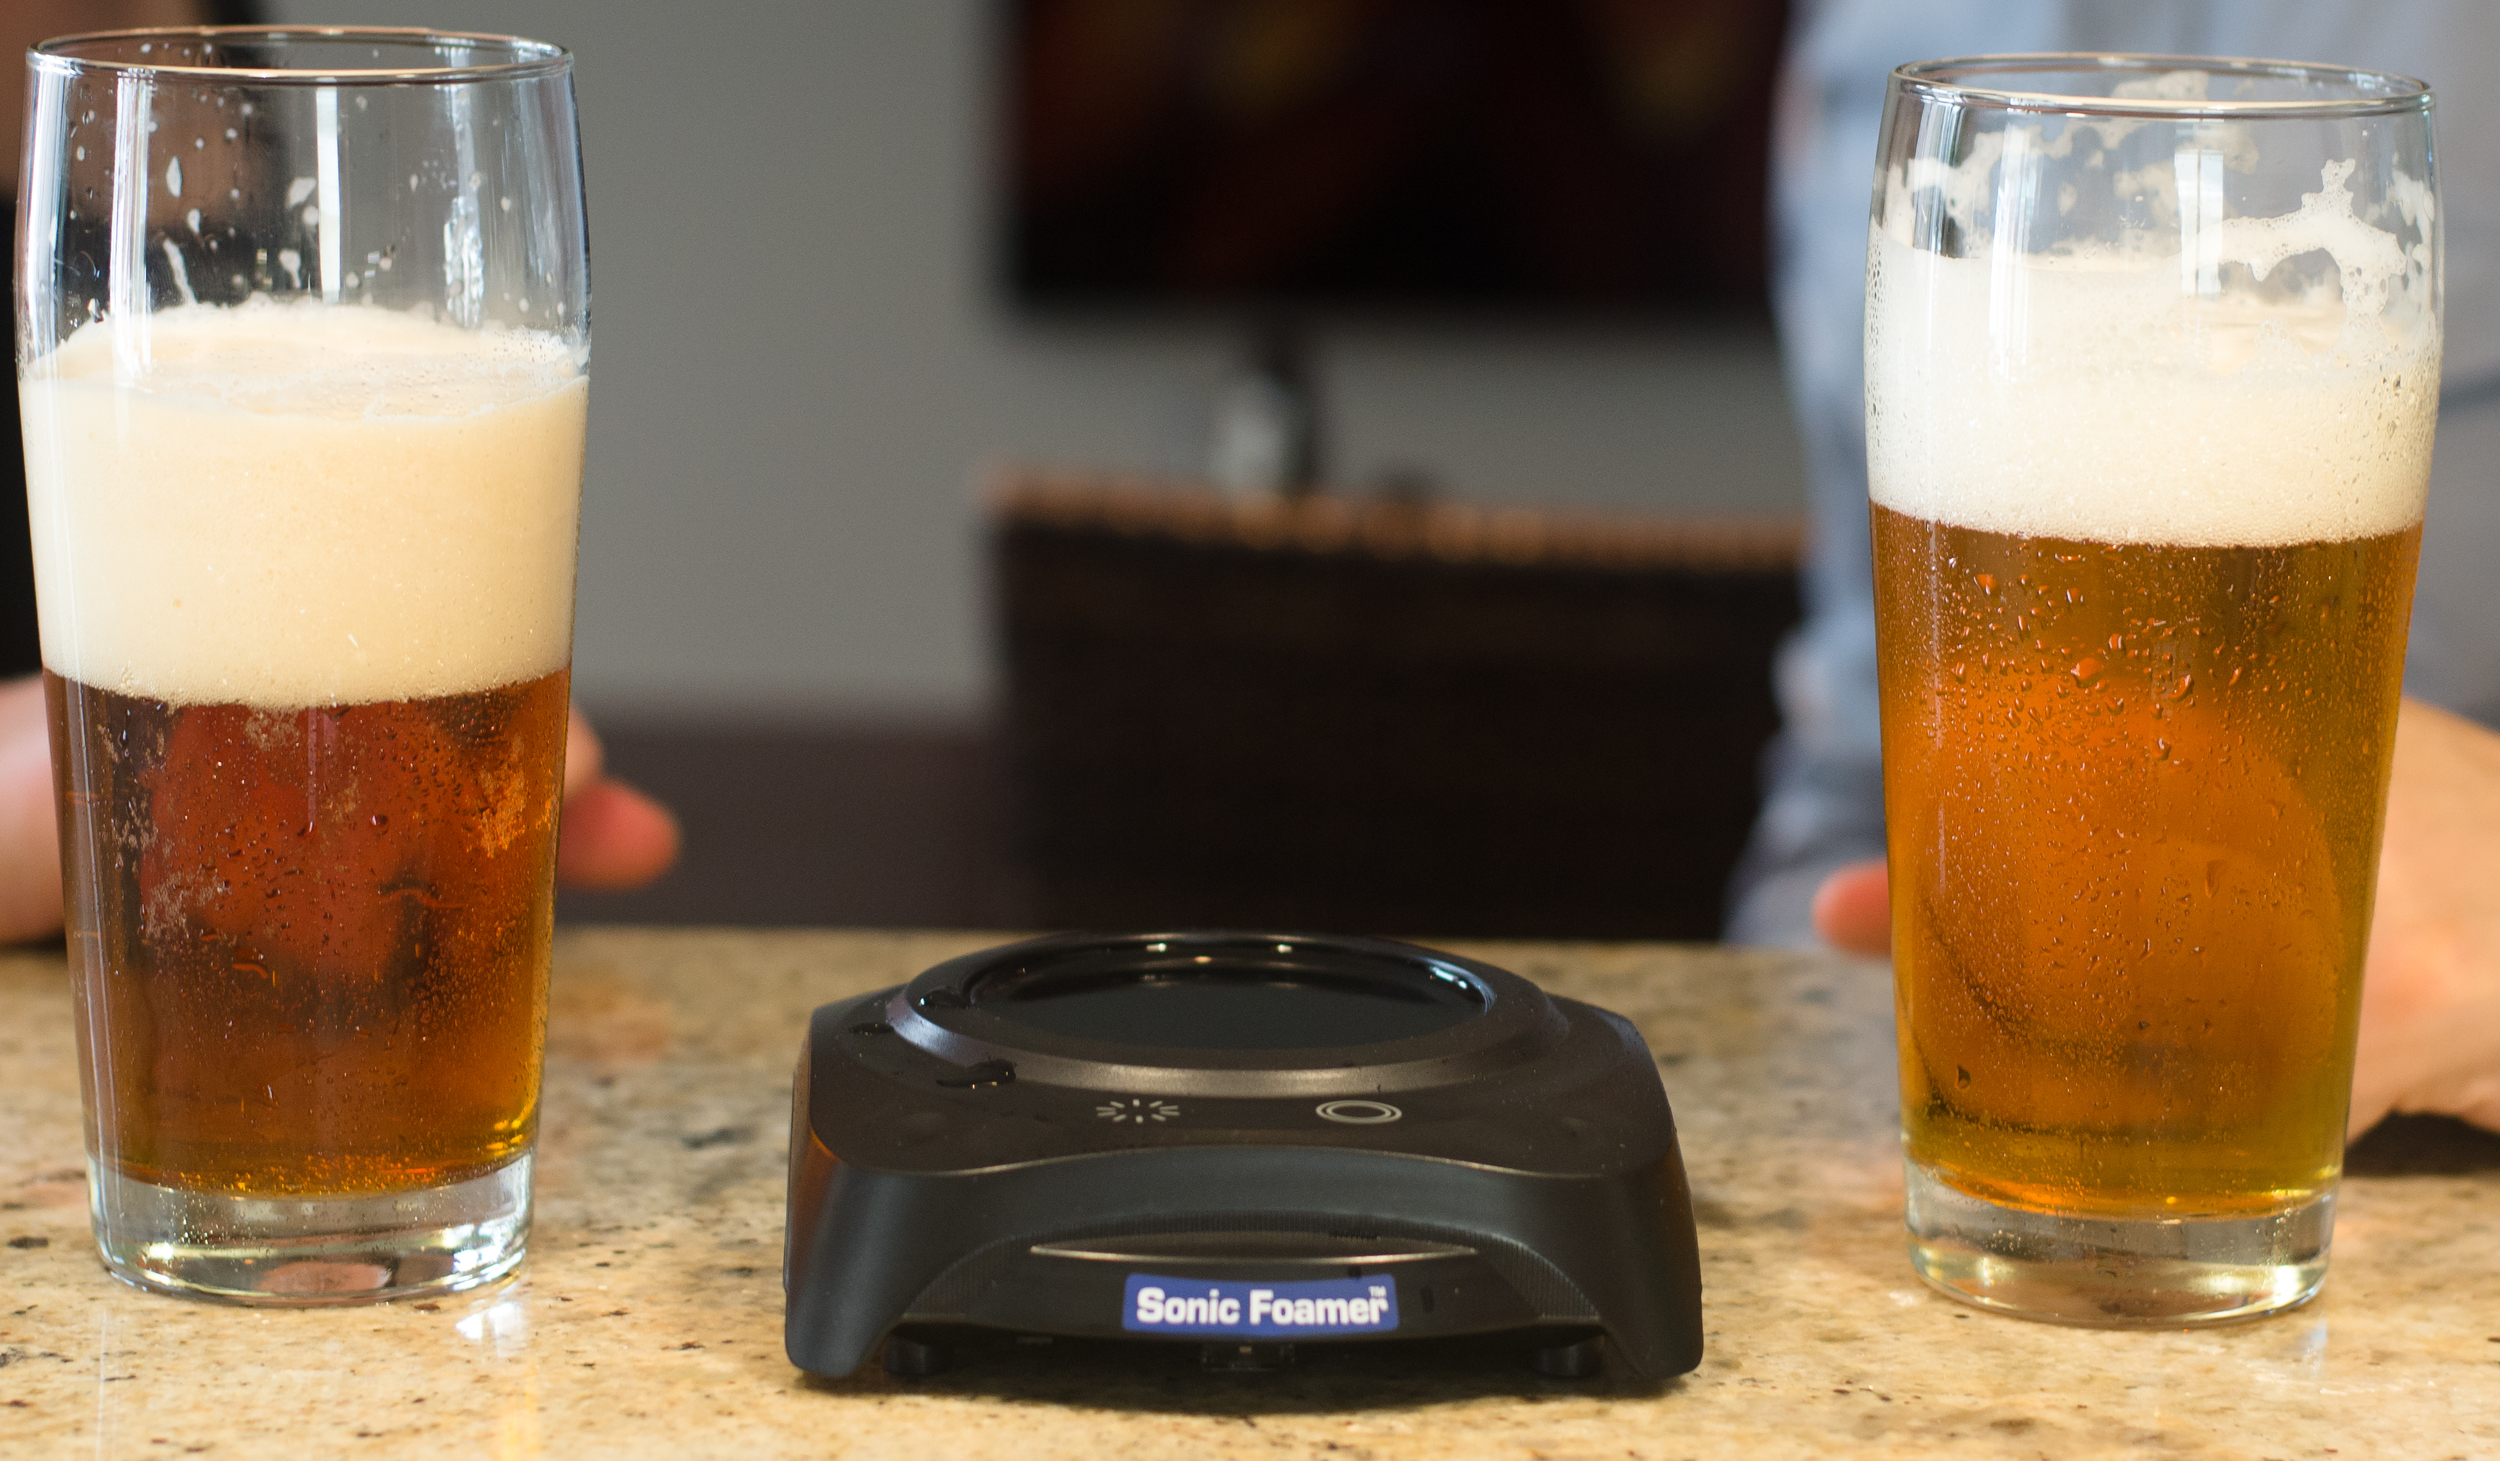 The Sonic Foamer, a gift for the uber beer geek